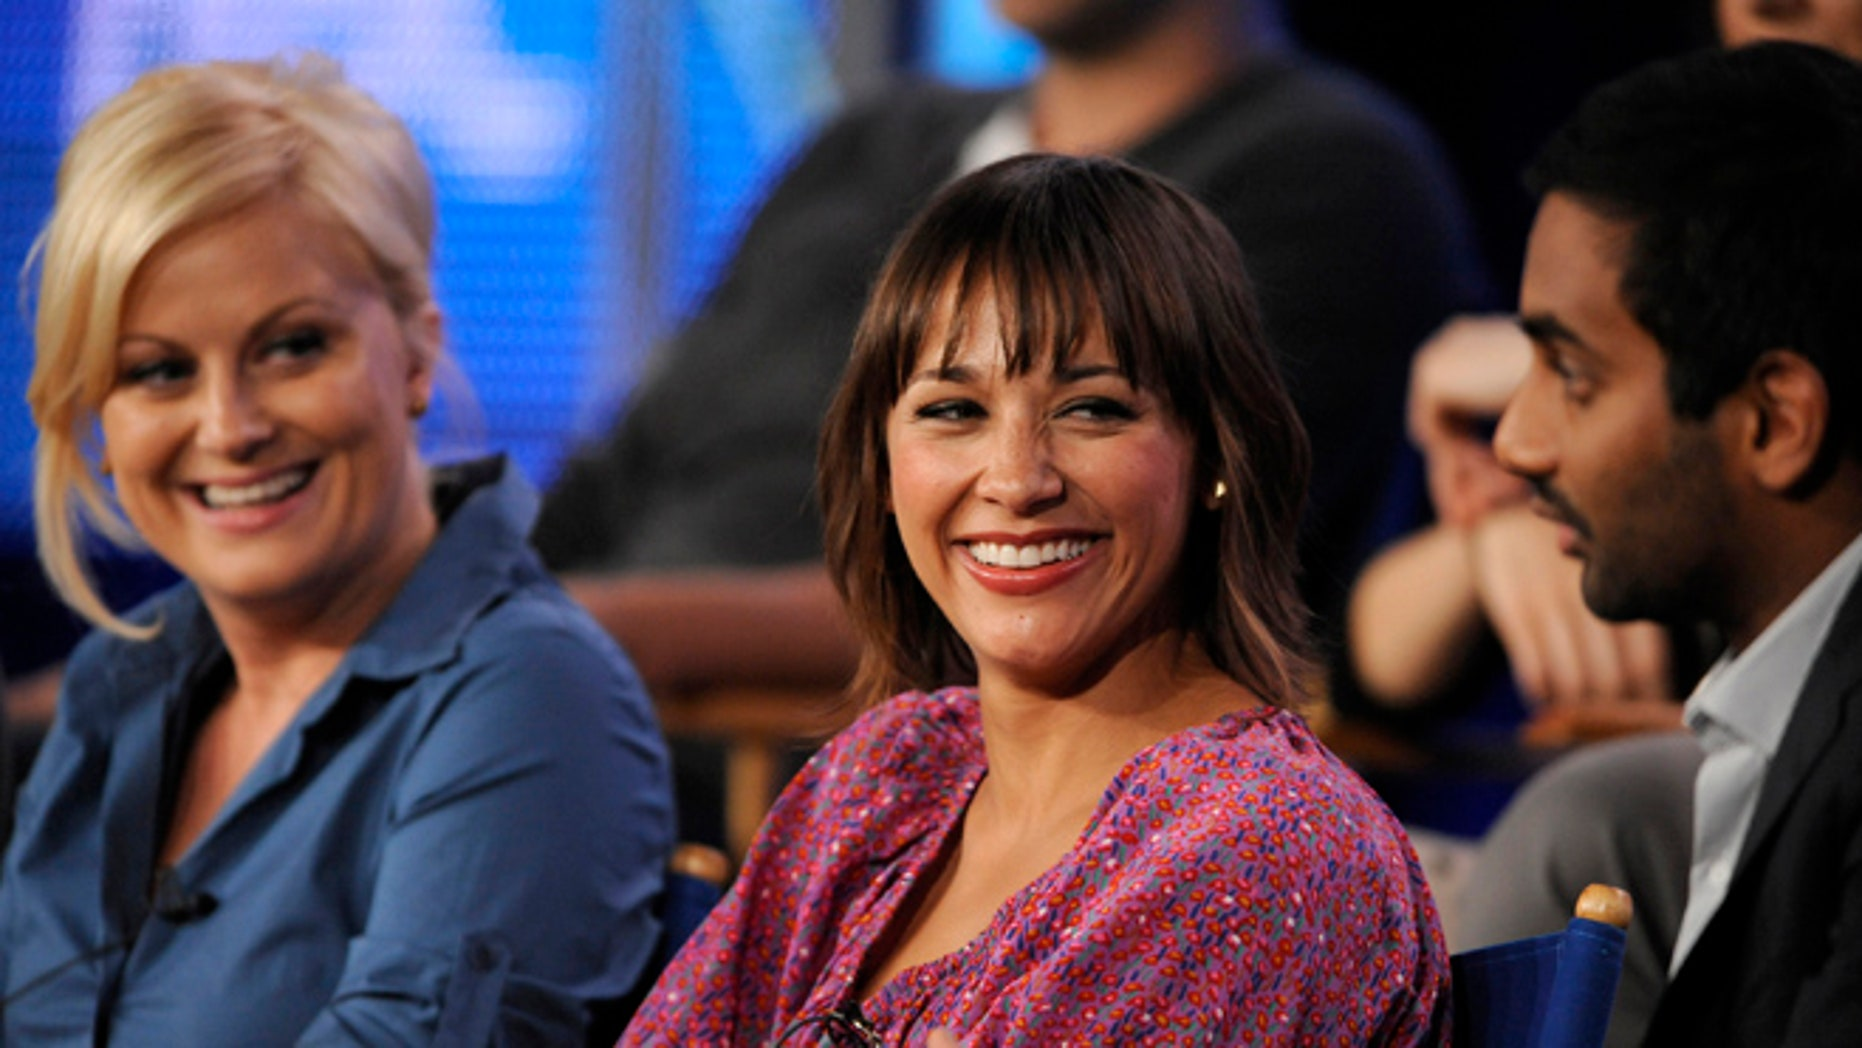 """Amy Poehler, Rashida Jones and Aziz Ansari from """"Parks and Recreation."""" Cast member Natalie Morales just came out as 'queer.'"""